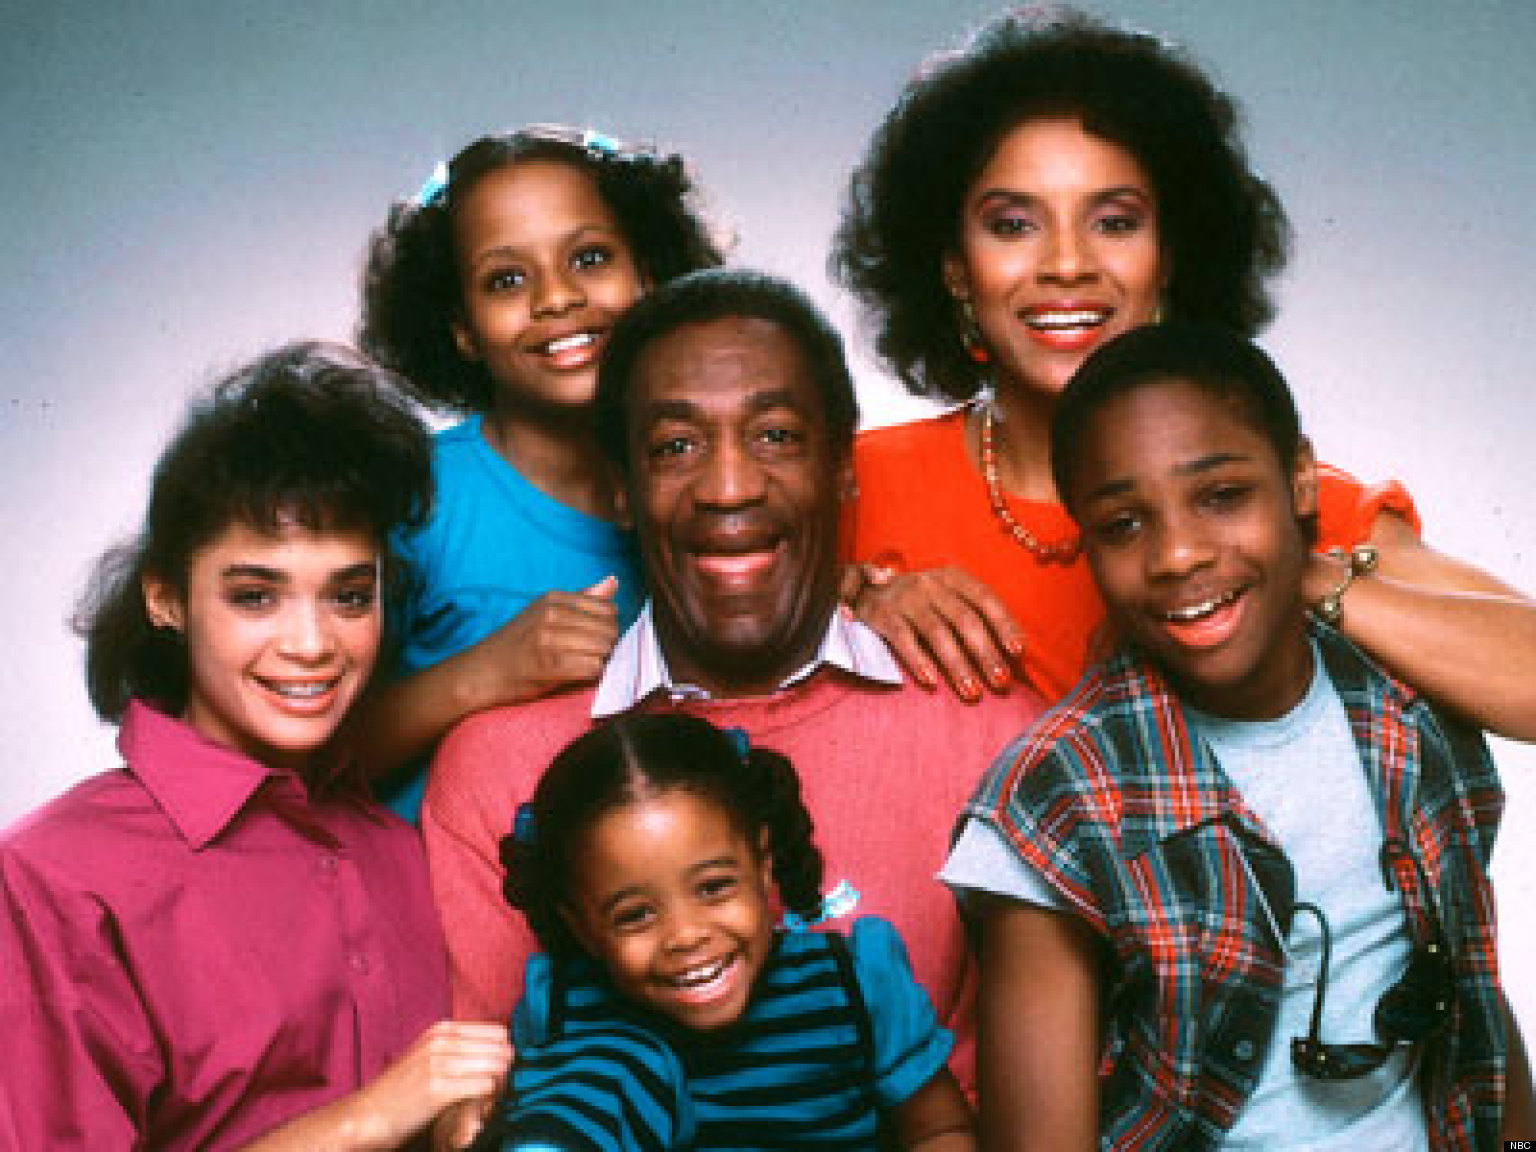 Bill Cosby, as Dr Huxtable, the family man at the centre of The Cosby Show sitcom.